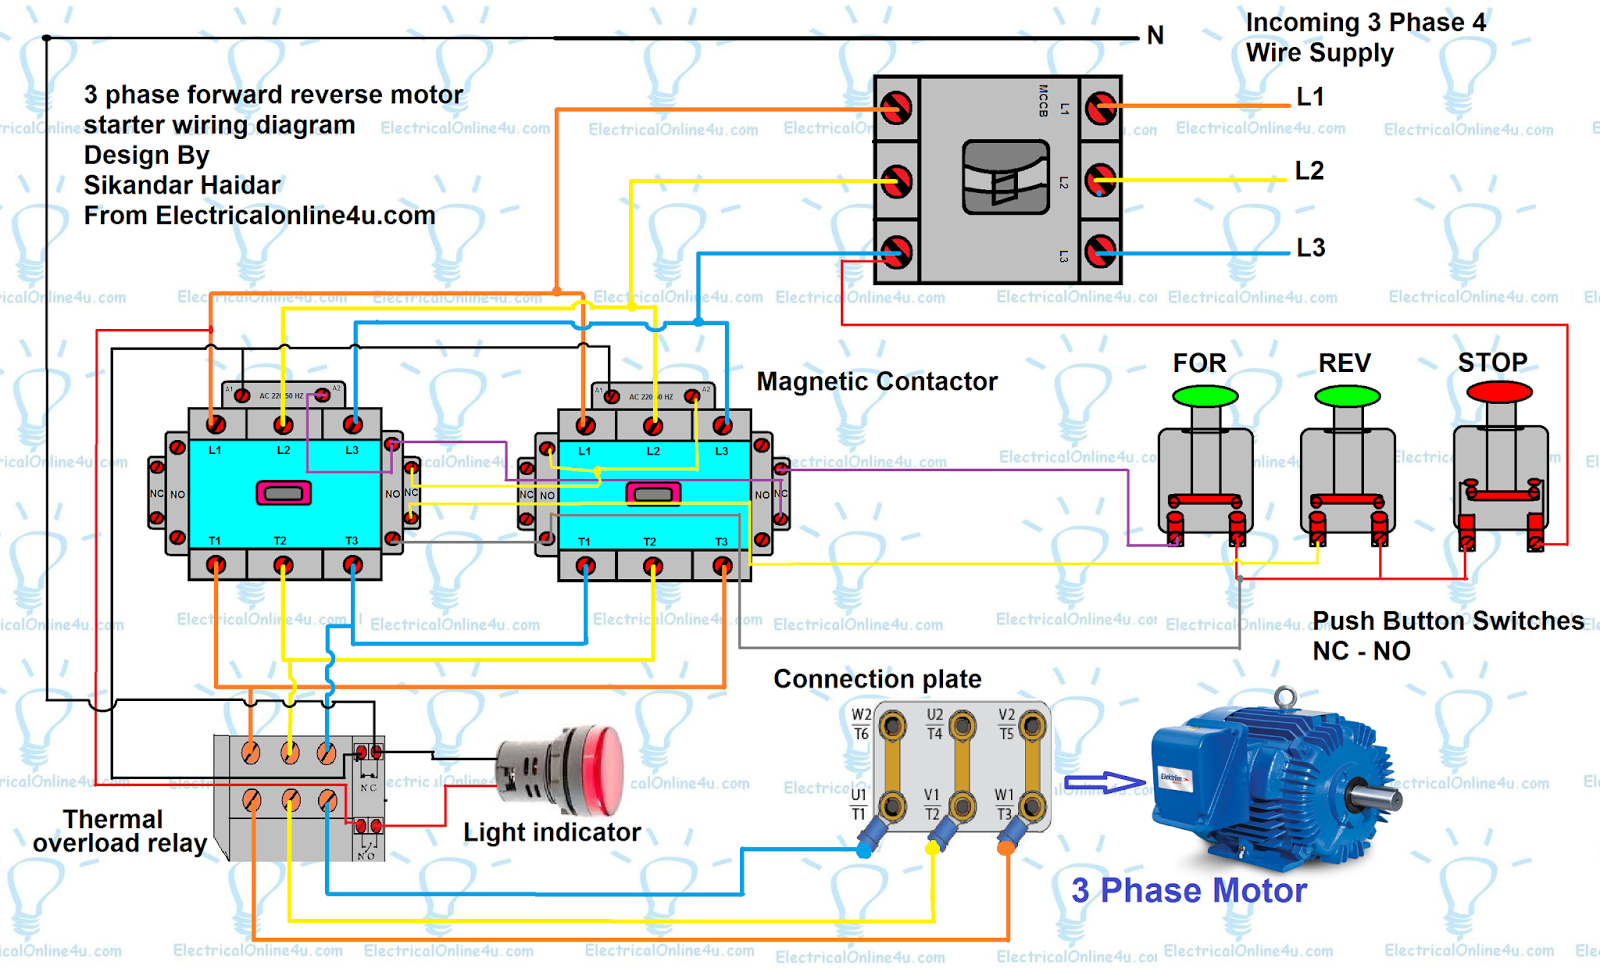 Electrical online 4u for 3 phase motor switch